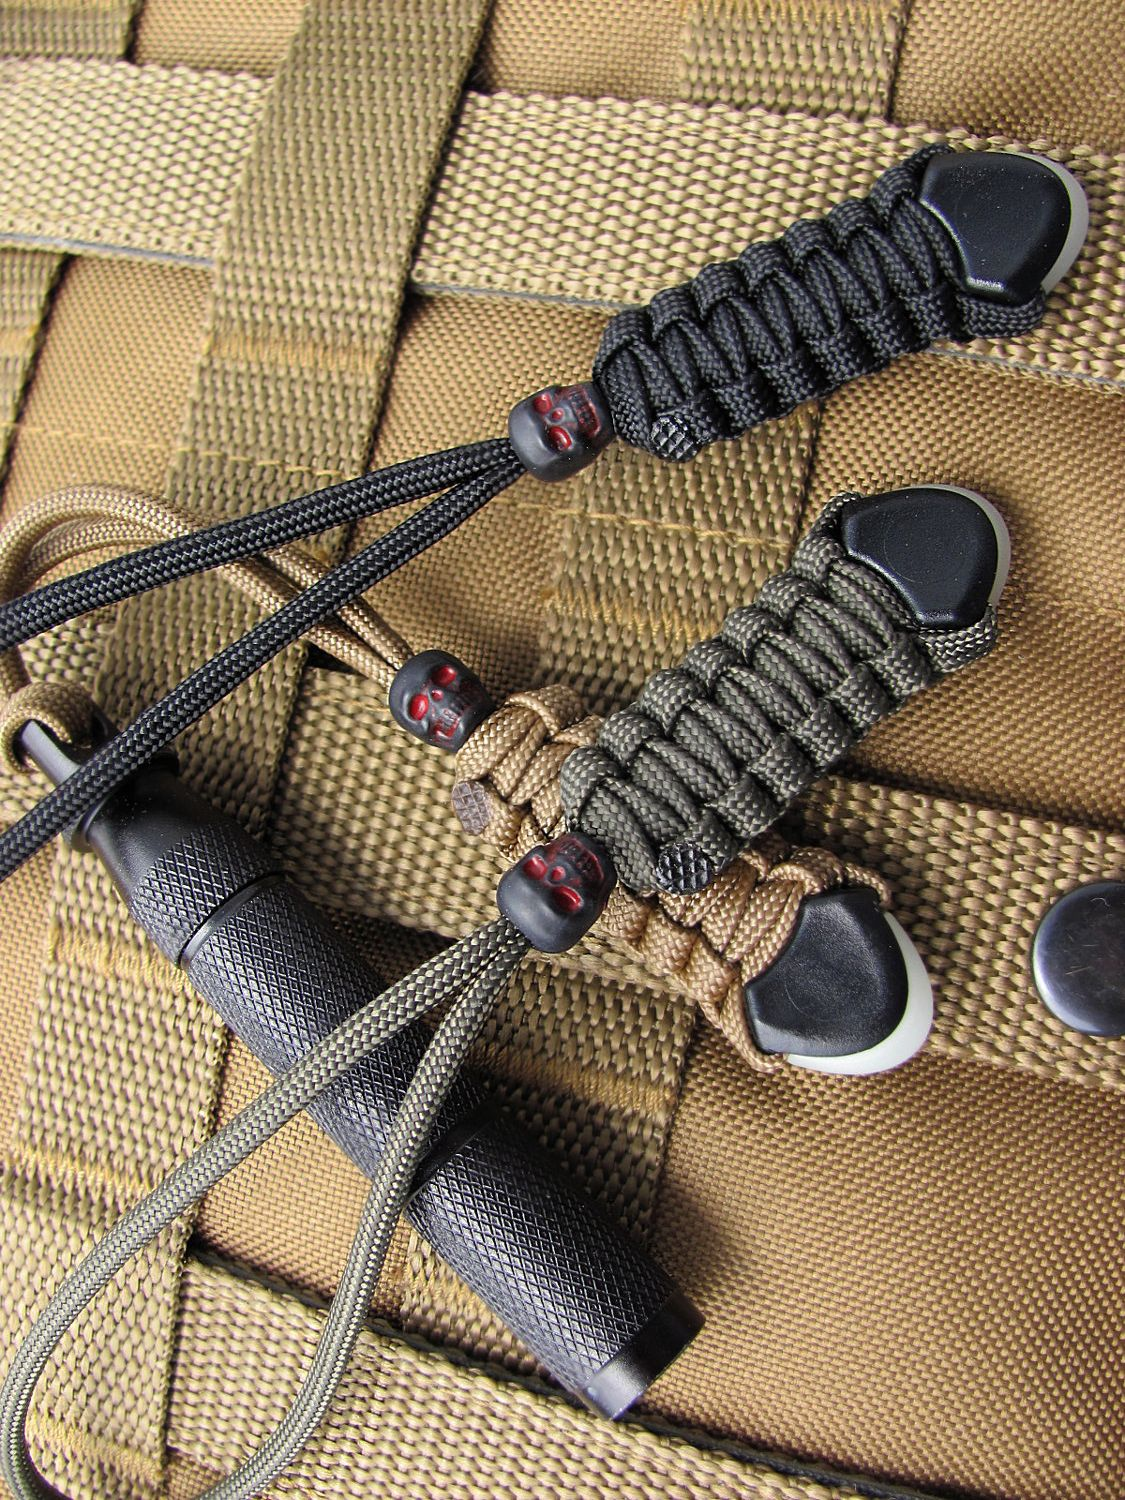 Tactical gear lanyards with black skull beads. Fit TAD by ZaneGear, $13.99